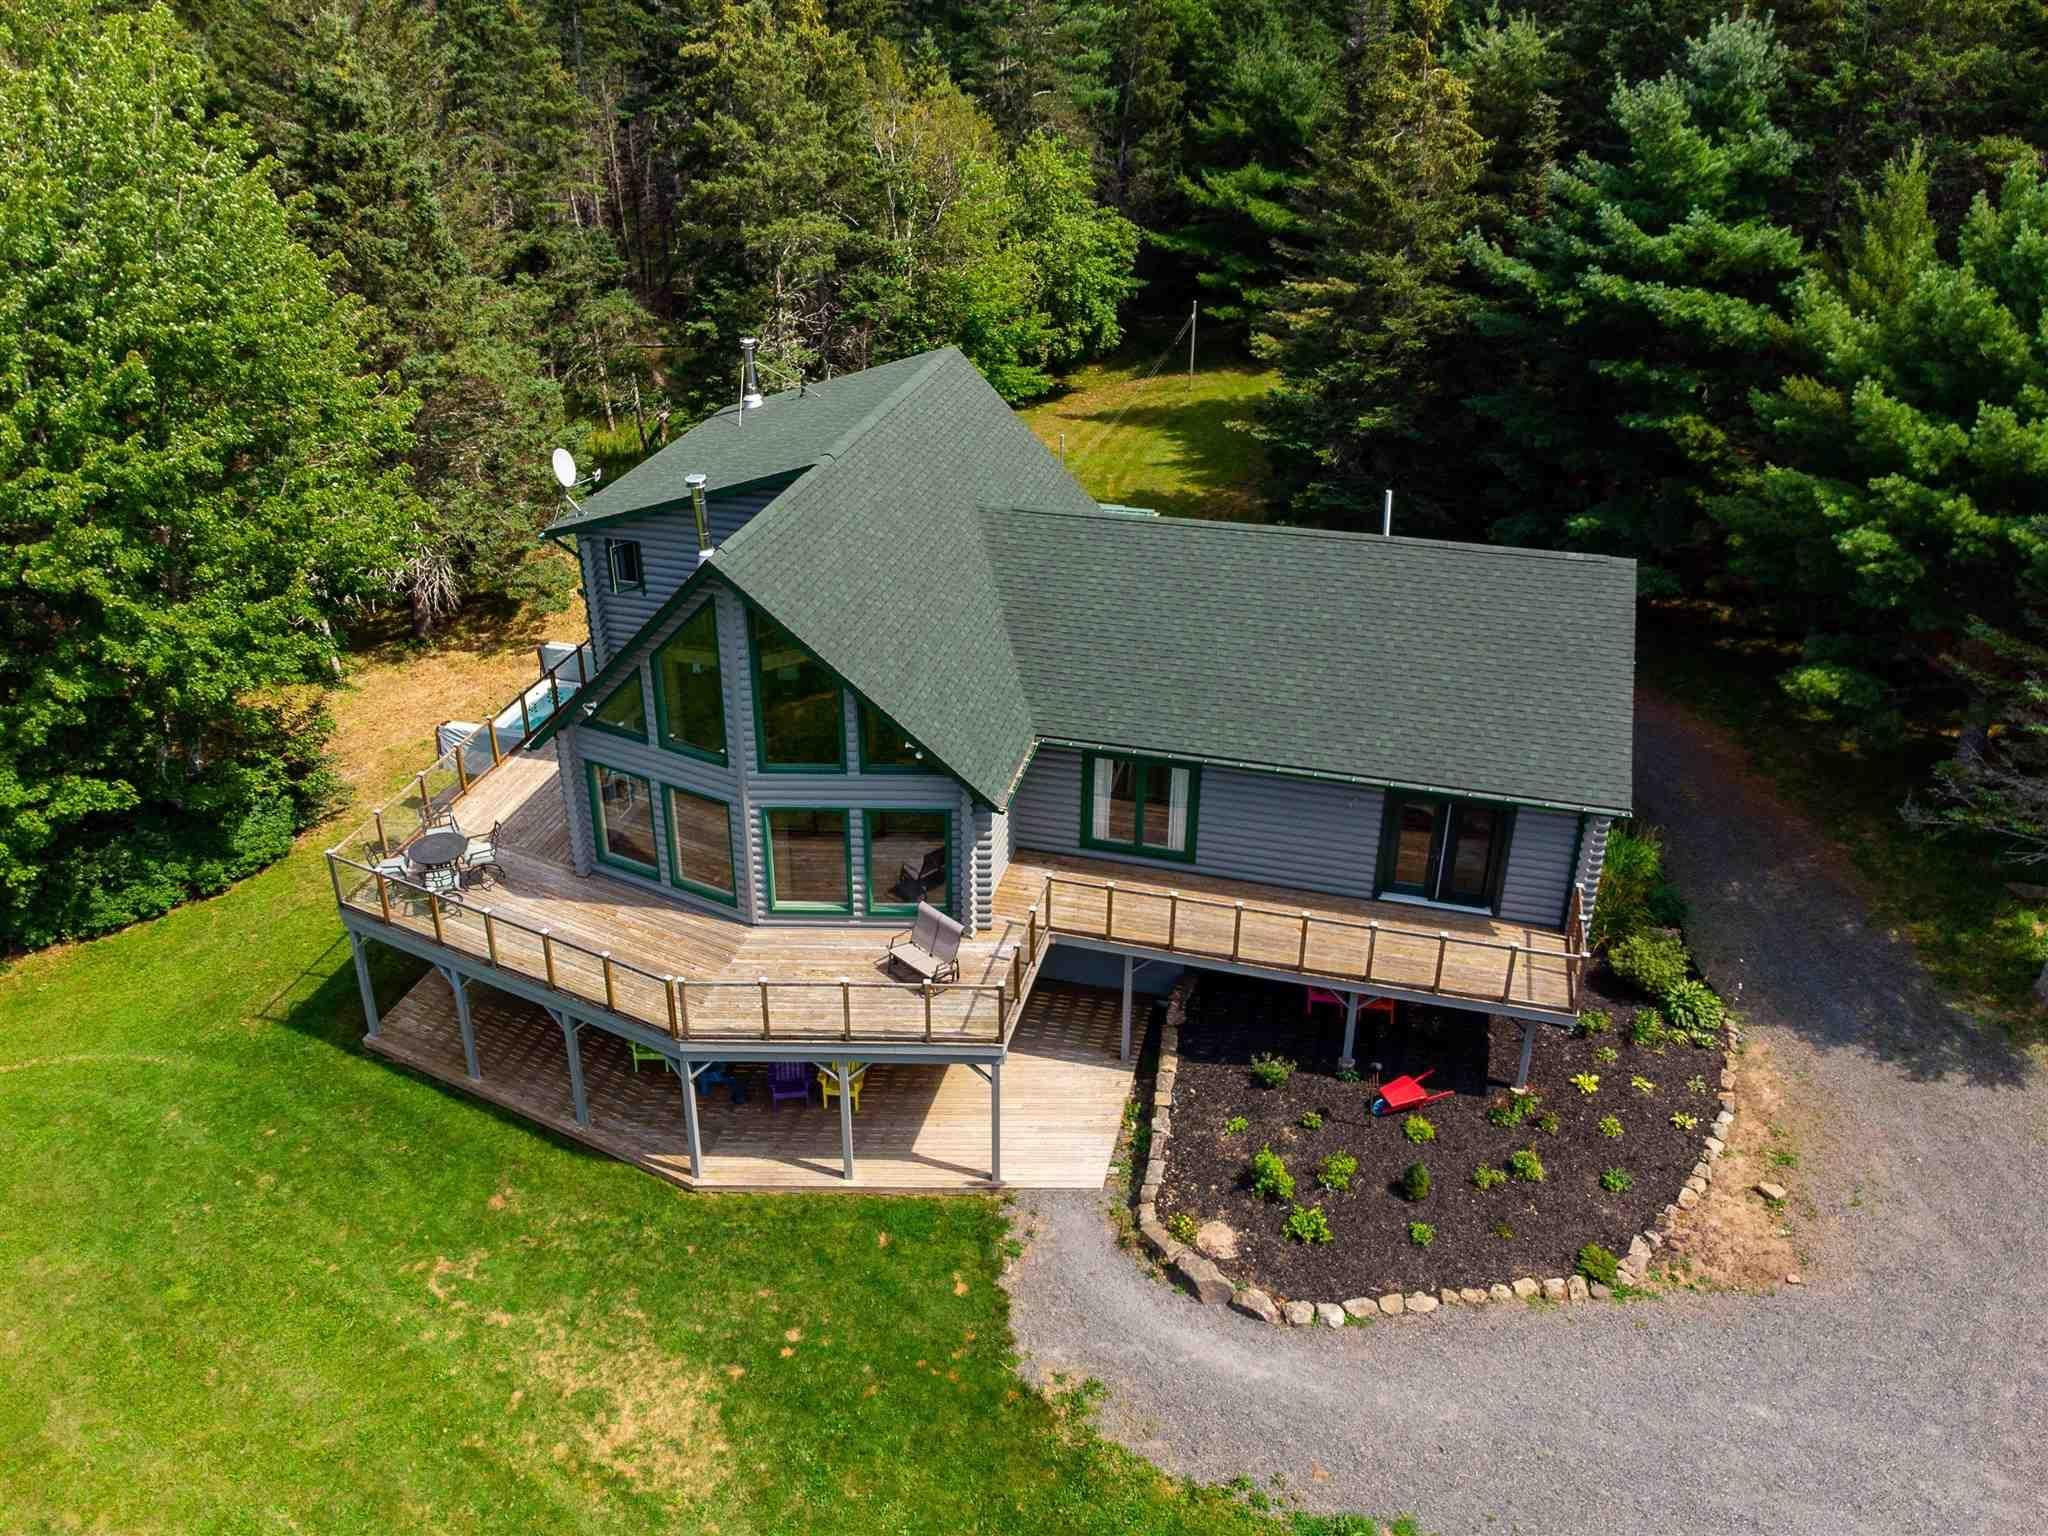 Main Photo: 63 Protection Road in Scotsburn: 108-Rural Pictou County Residential for sale (Northern Region)  : MLS®# 202121185